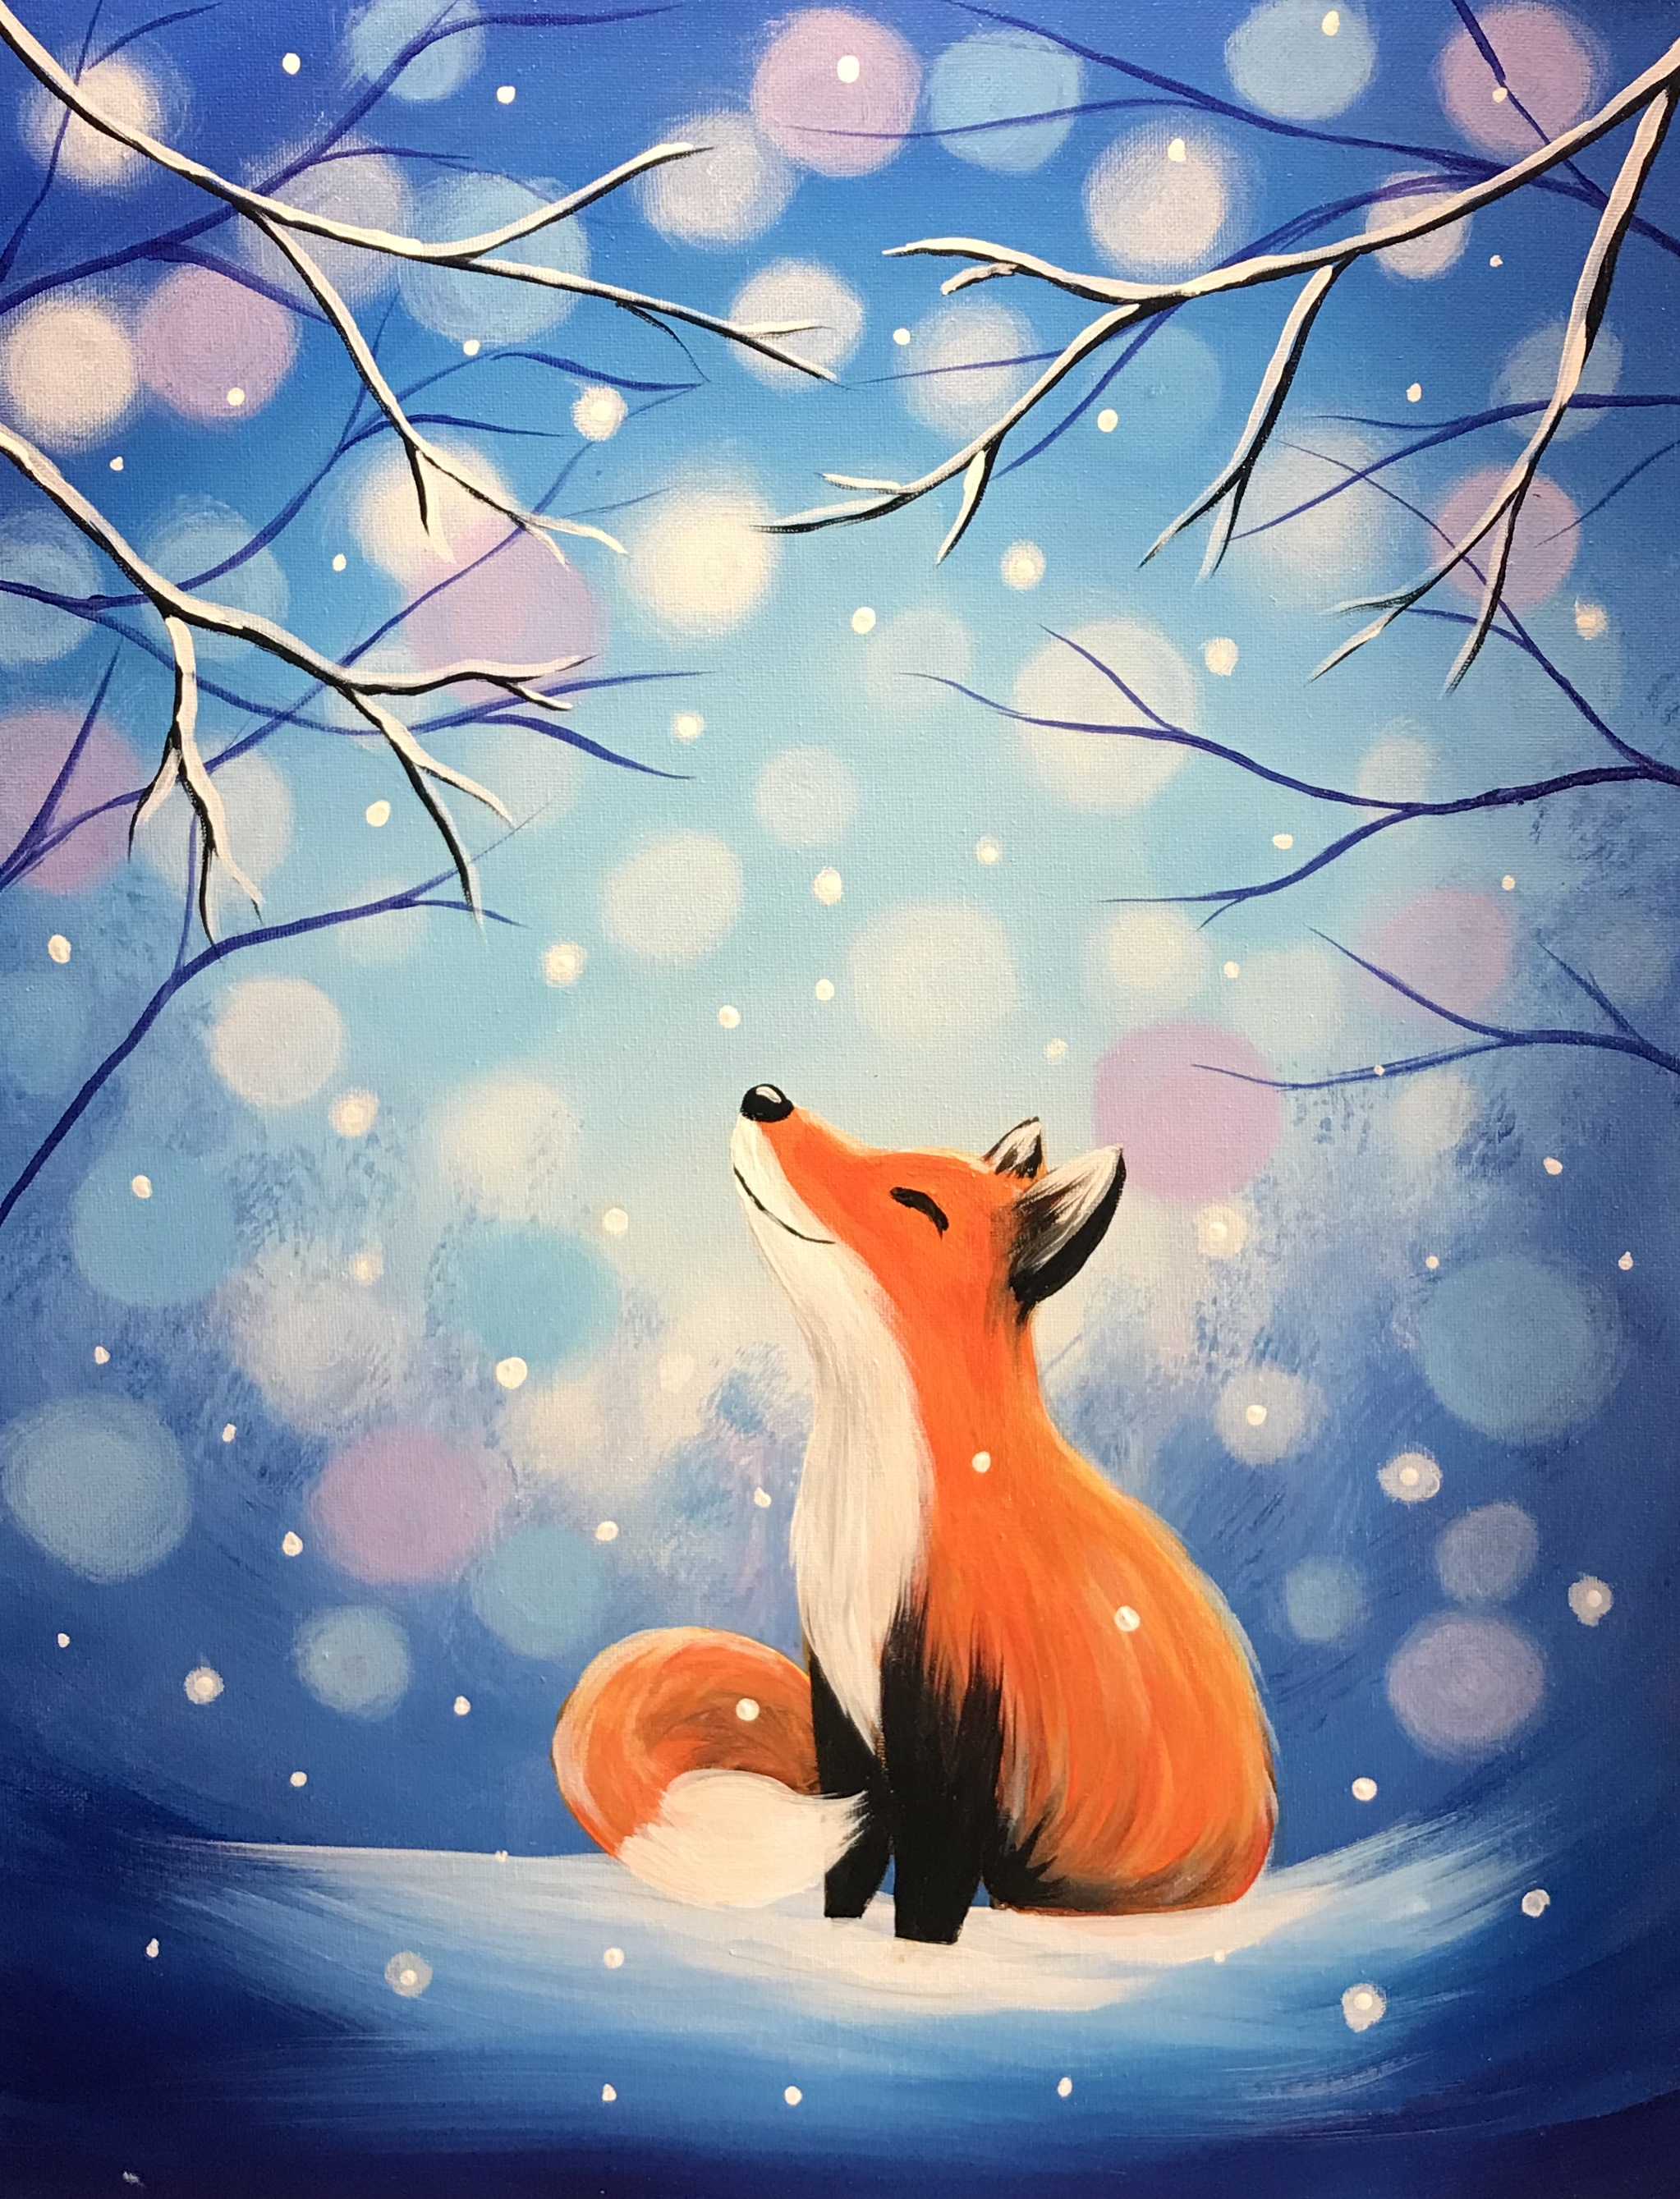 A Snow Fox Given experience project by Yaymaker